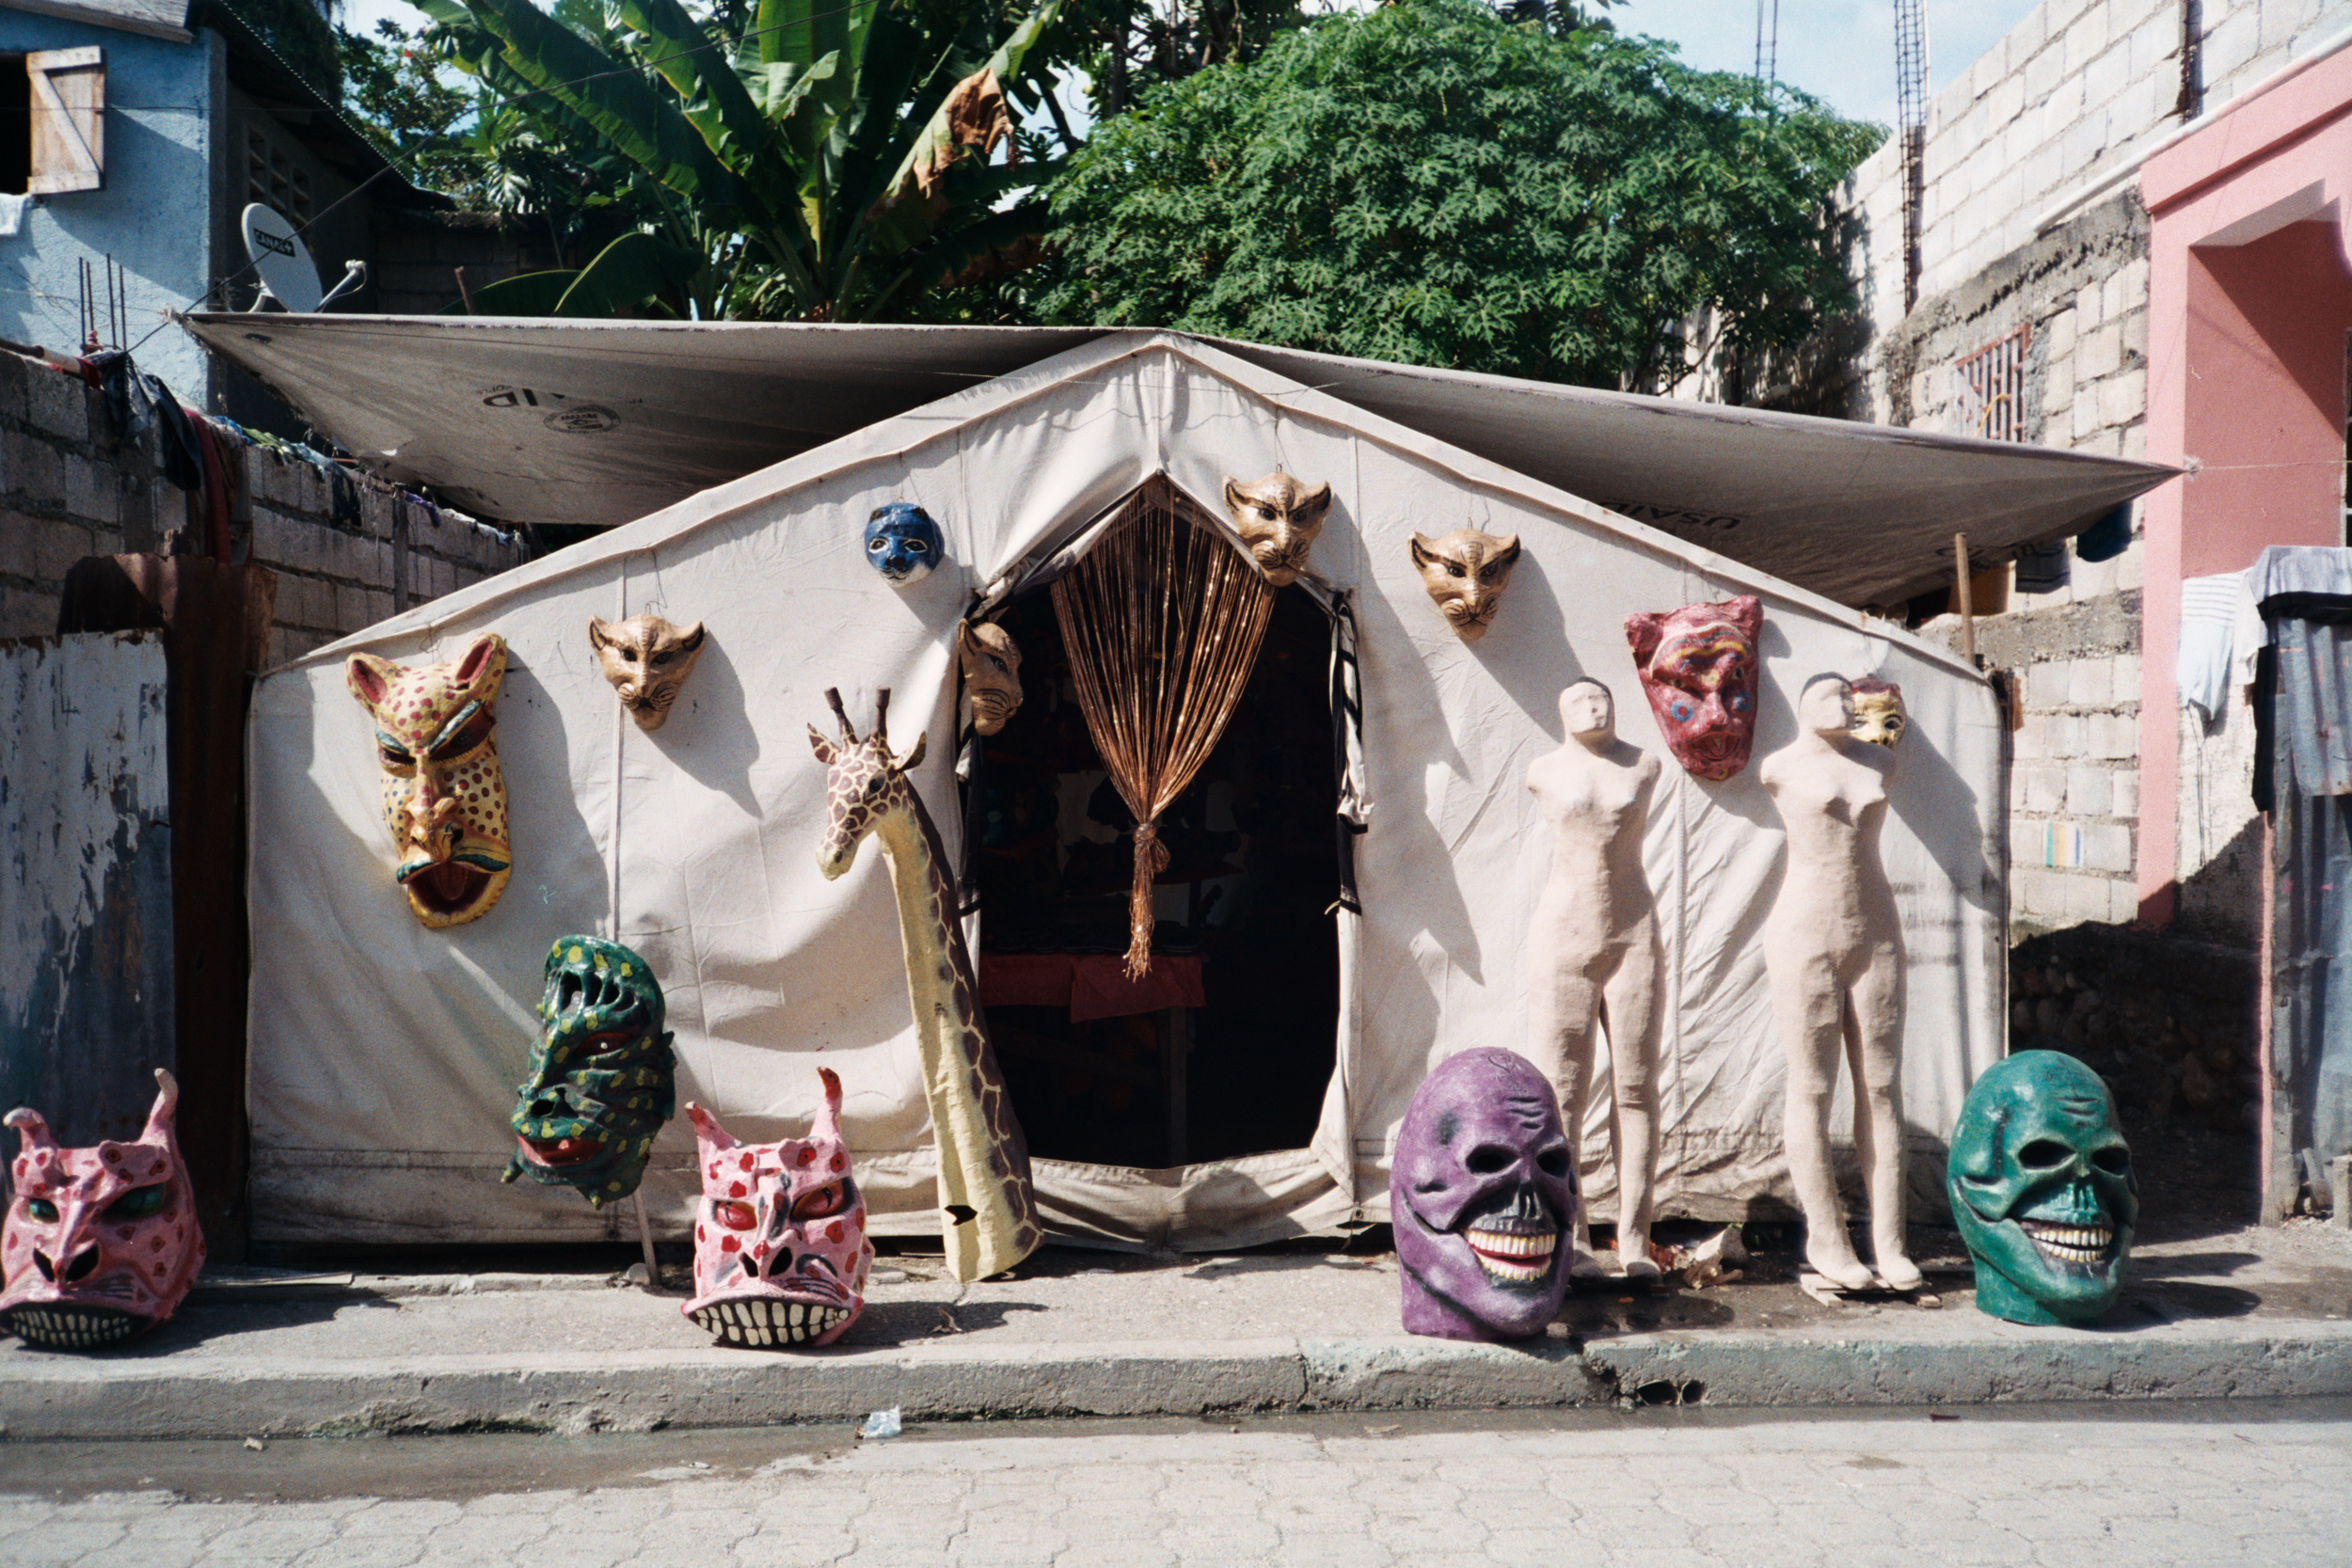 Jacmel is Haiti's capital of artists. Here there are many galleries and shops selling paintings, handicrafts, and paper maché sculptures.